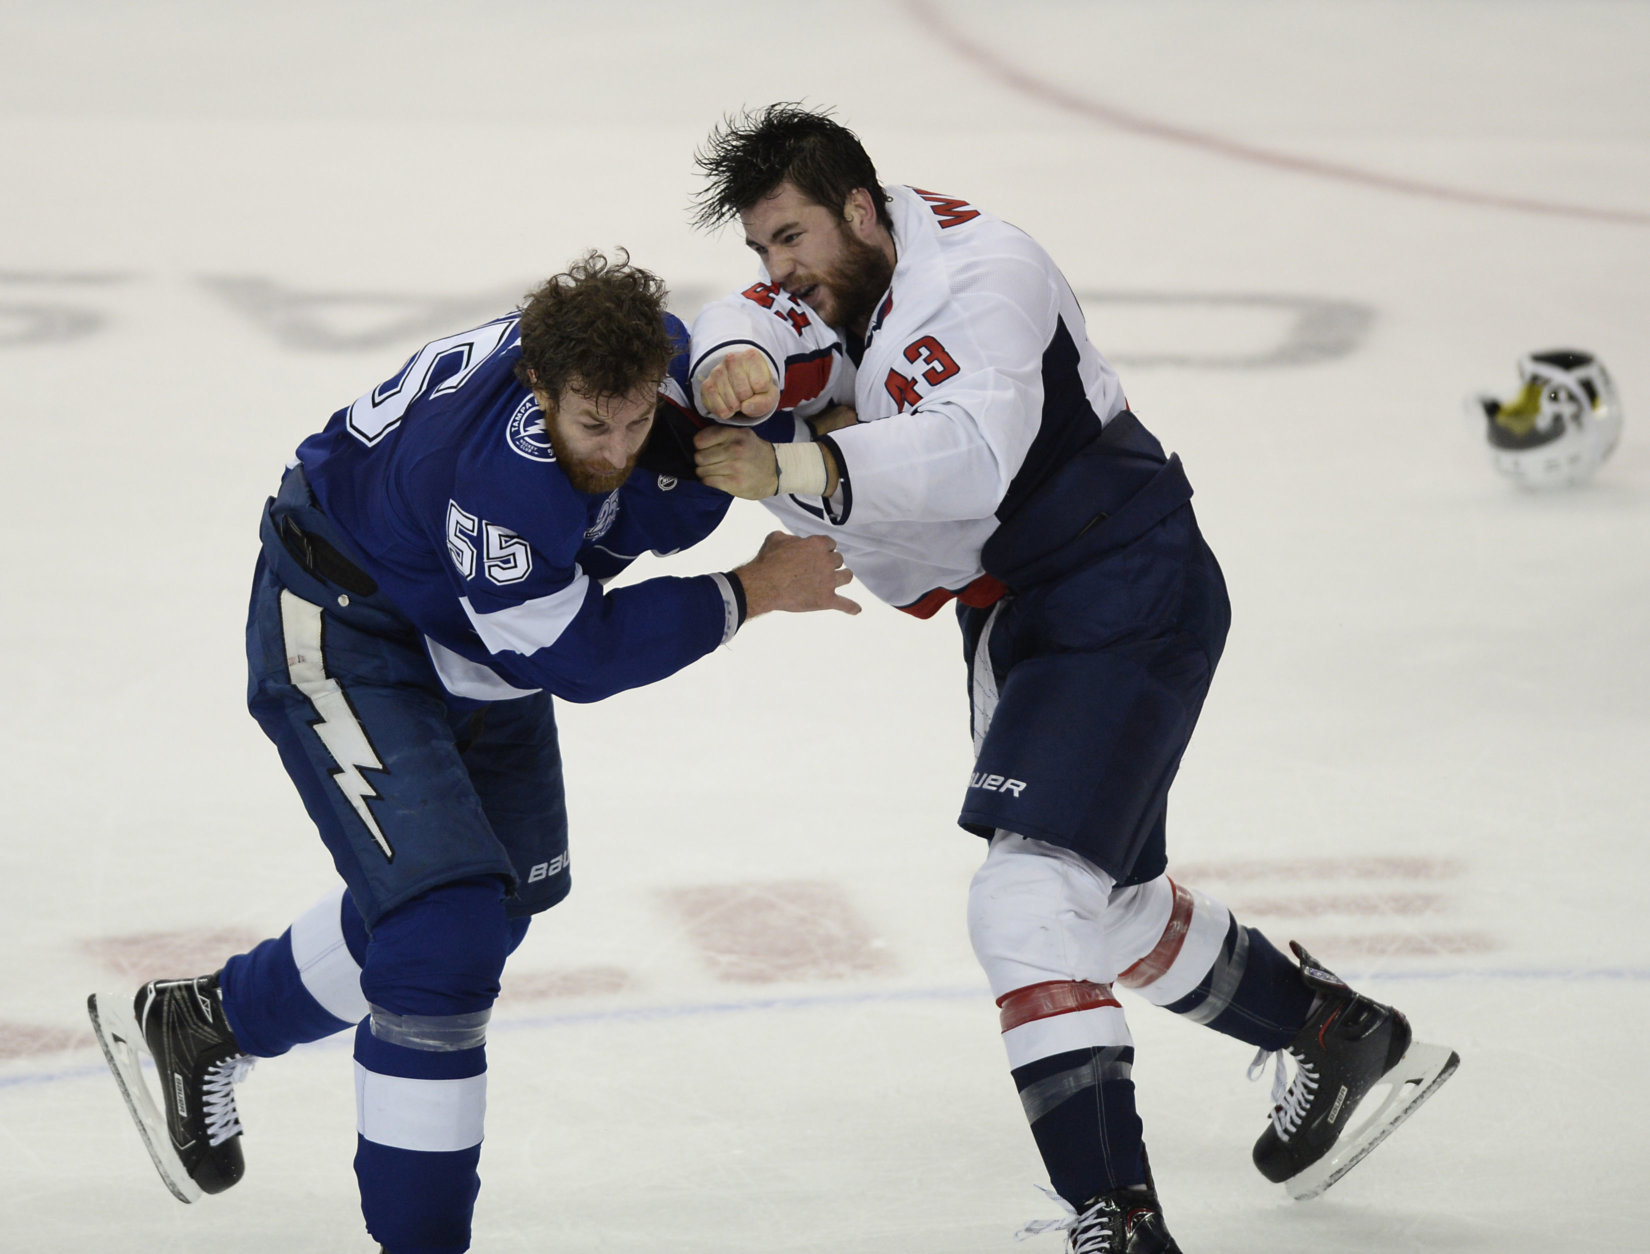 Tampa Bay Lightning defenseman Braydon Coburn (55) and Washington Capitals right wing Tom Wilson (43) fight during the first period of Game 7 of the NHL Eastern Conference finals hockey playoff series Wednesday, May 23, 2018, in Tampa, Fla. (AP Photo/Jason Behnken)